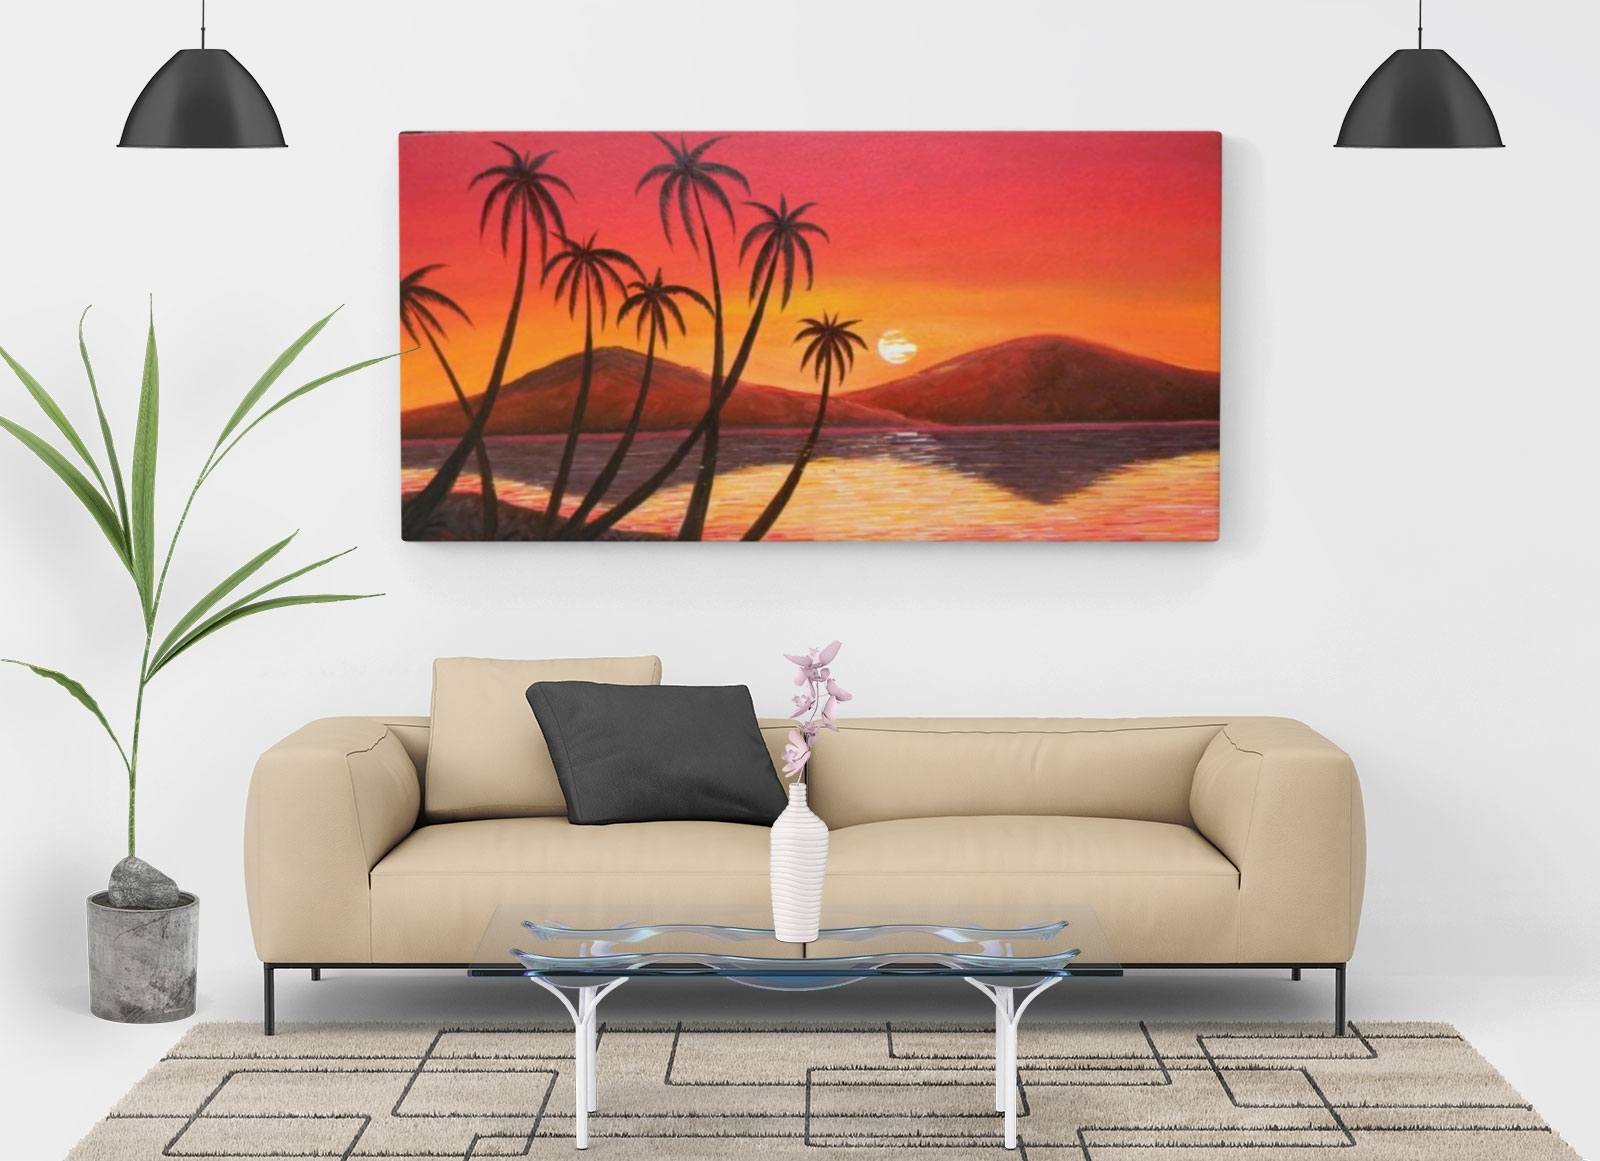 Most Recent Free Living Room Painting Wall Canvas Mockup Psd – Good Mockups Inside Mockup Canvas Wall Art (View 12 of 15)